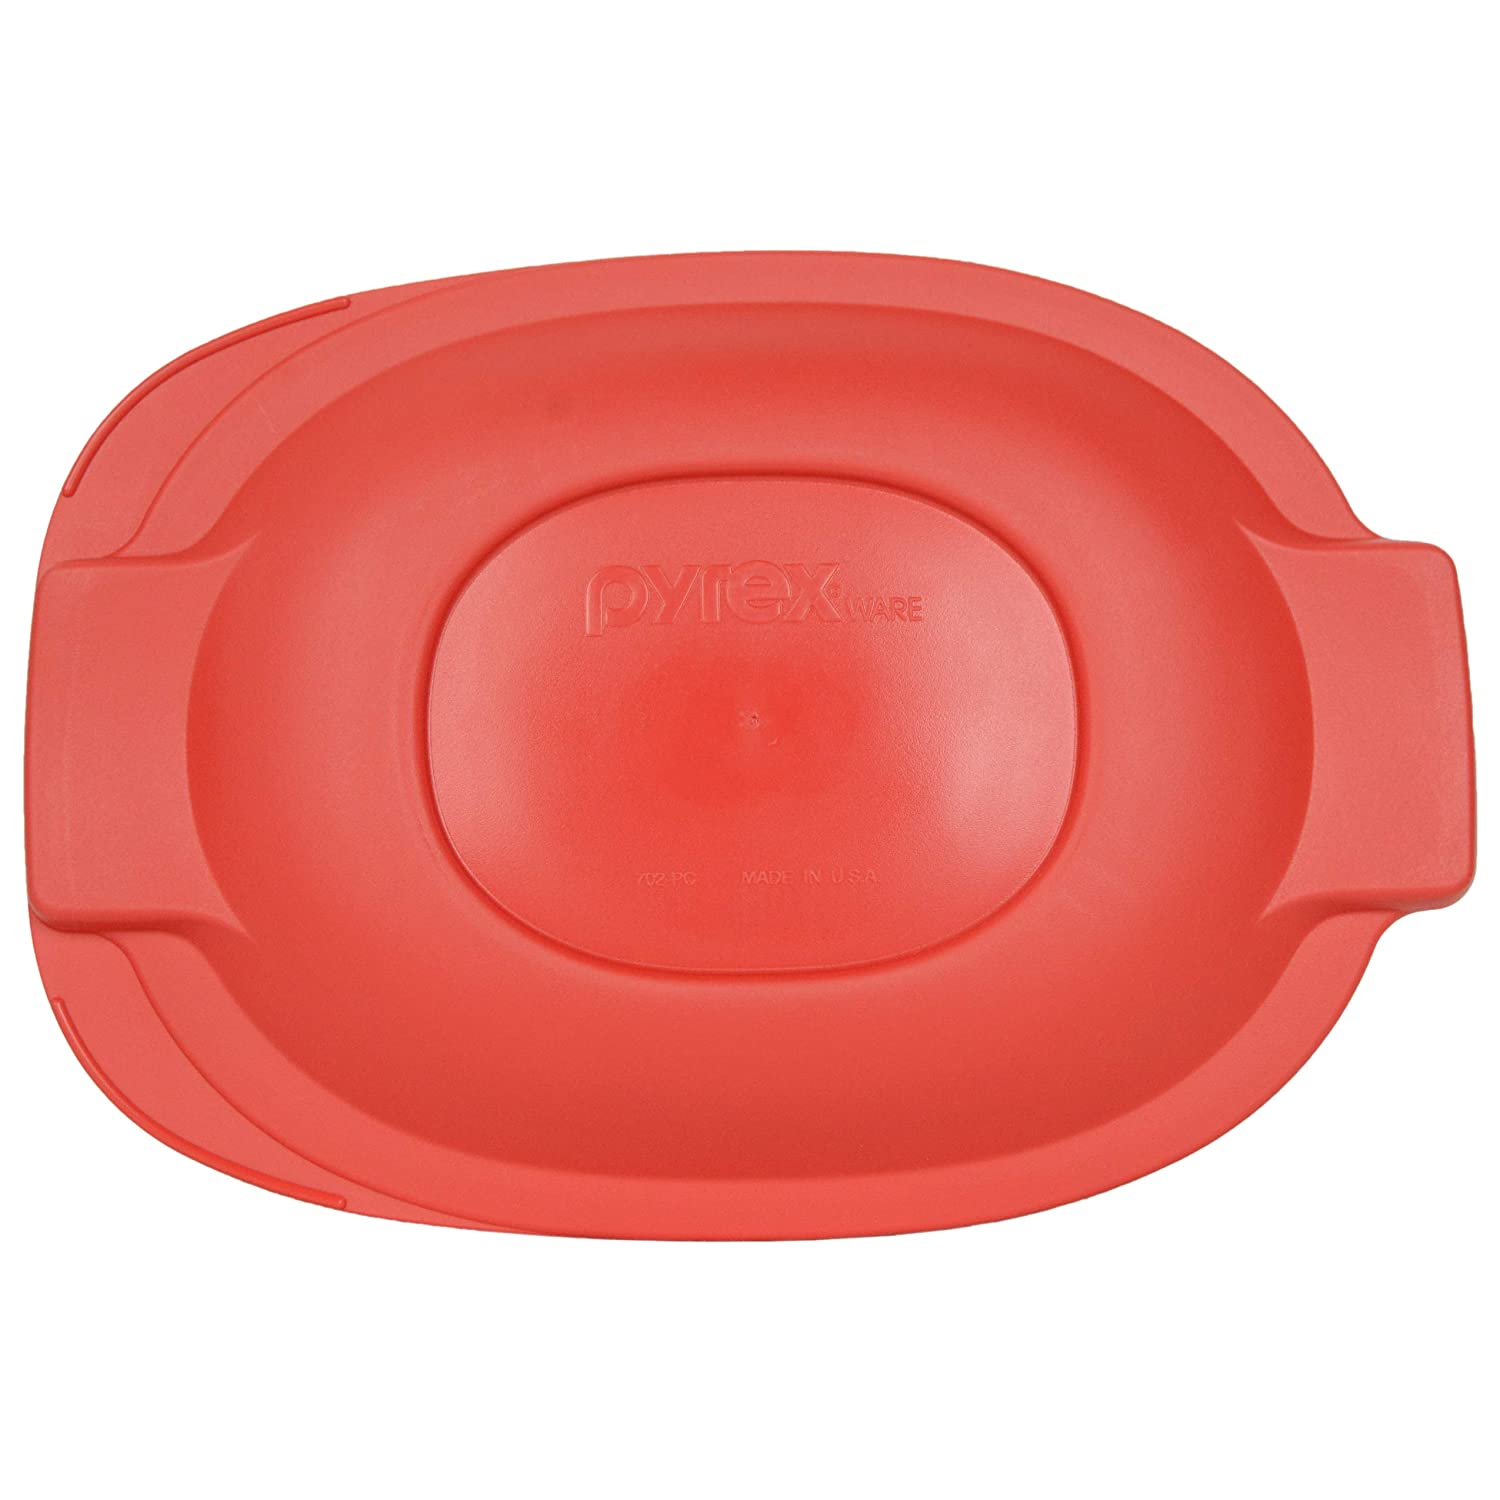 Amazon.com: Pyrex 702-PC 2.5 Quart Oval Red - Tapa de ...